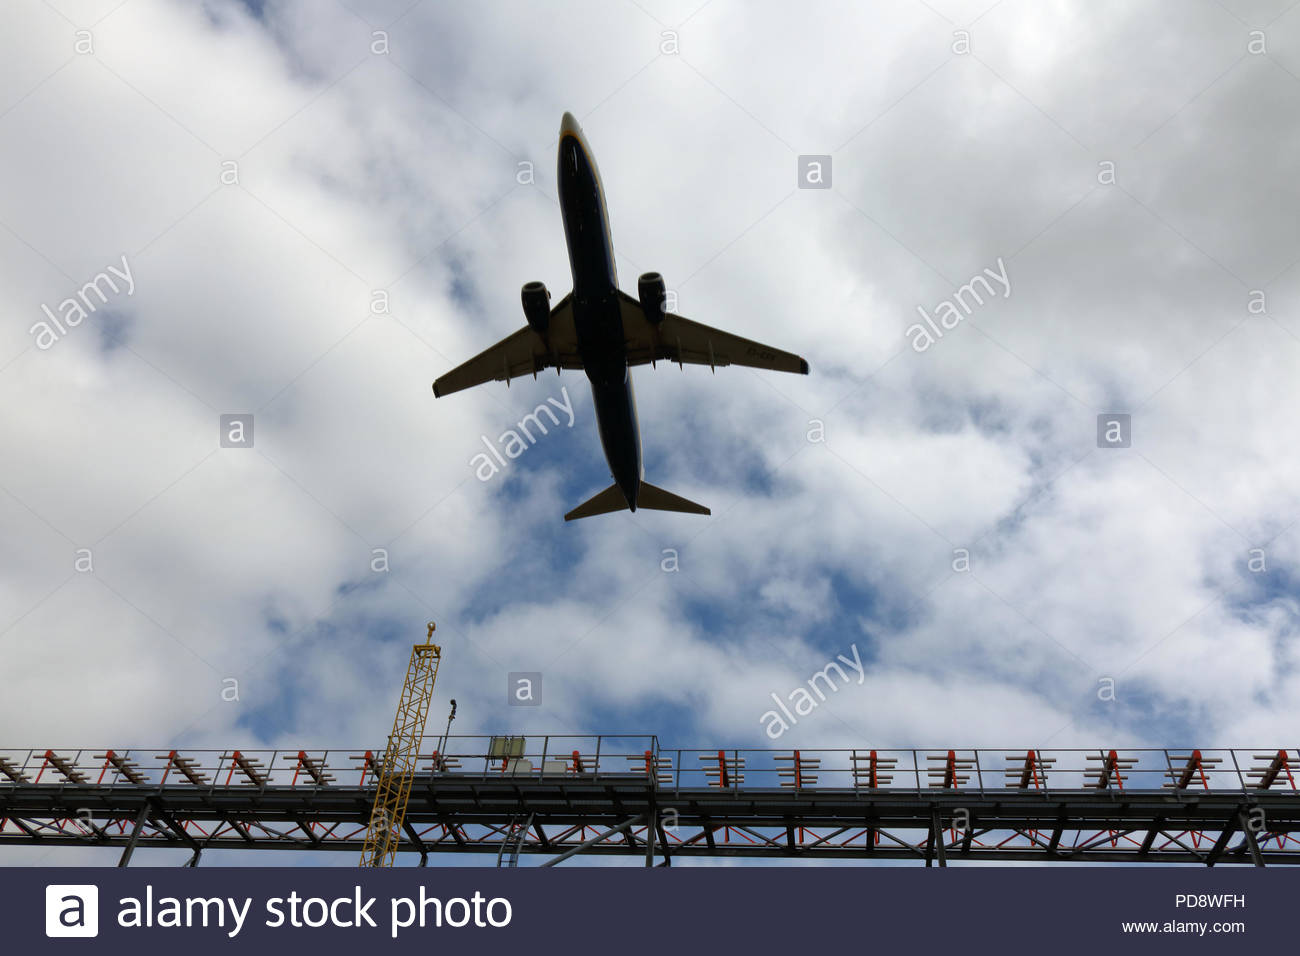 Aircraft departing Bristol airport overflying ILS equipment at the end of Runway 27, Bristol, UK - Stock Image